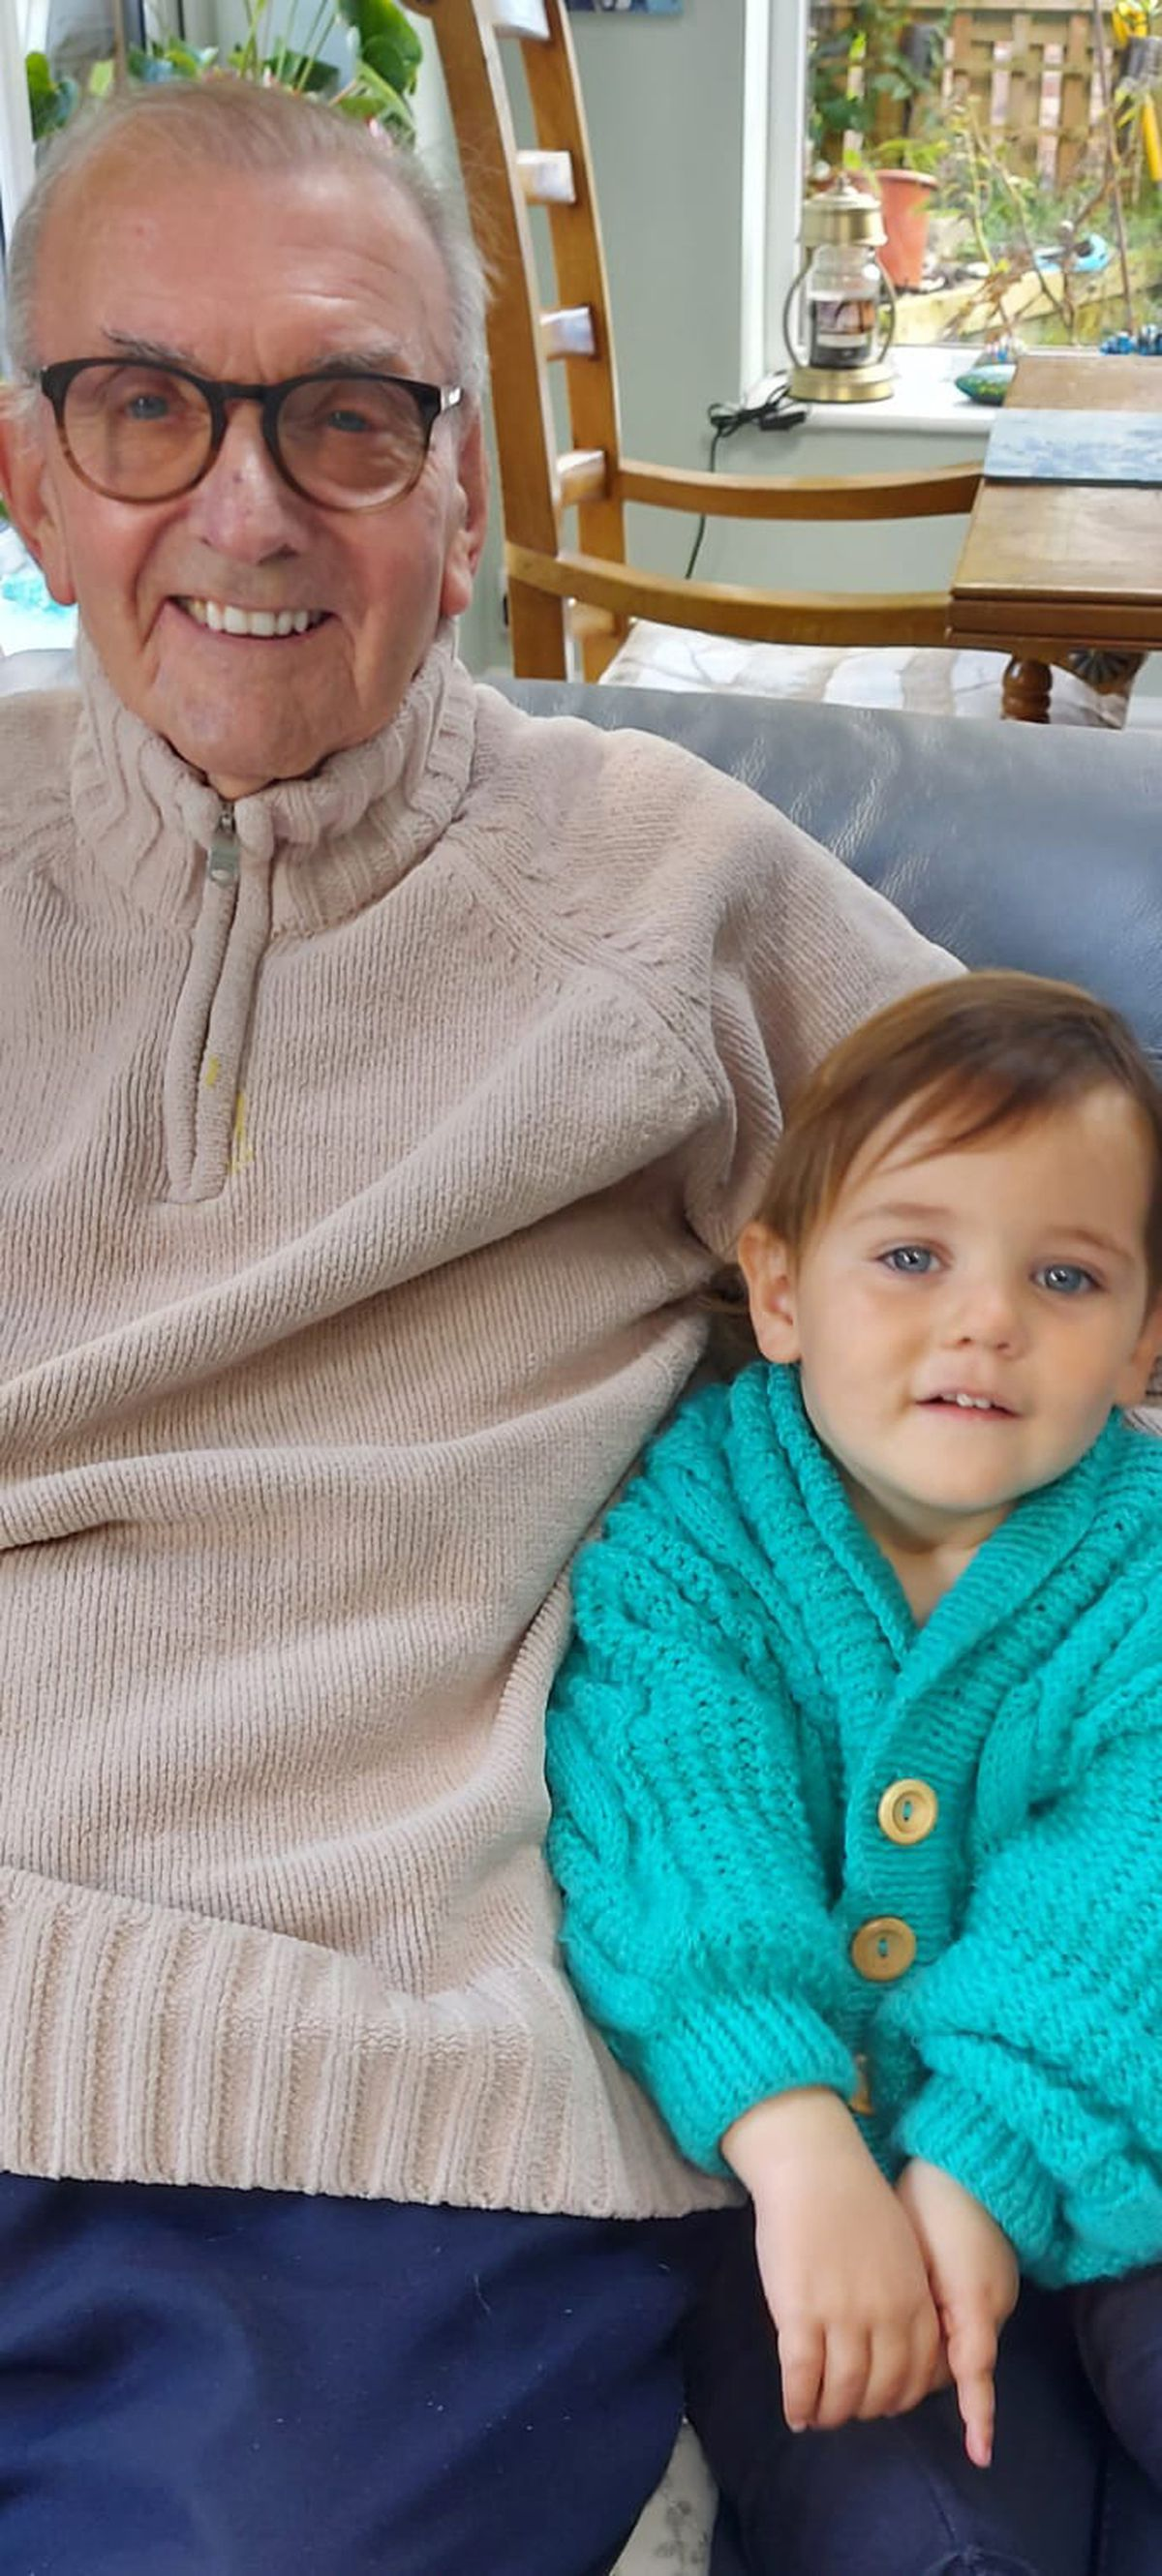 Roy with his great-grandson Cooper Goodall, who takes his name after his great-granddad.